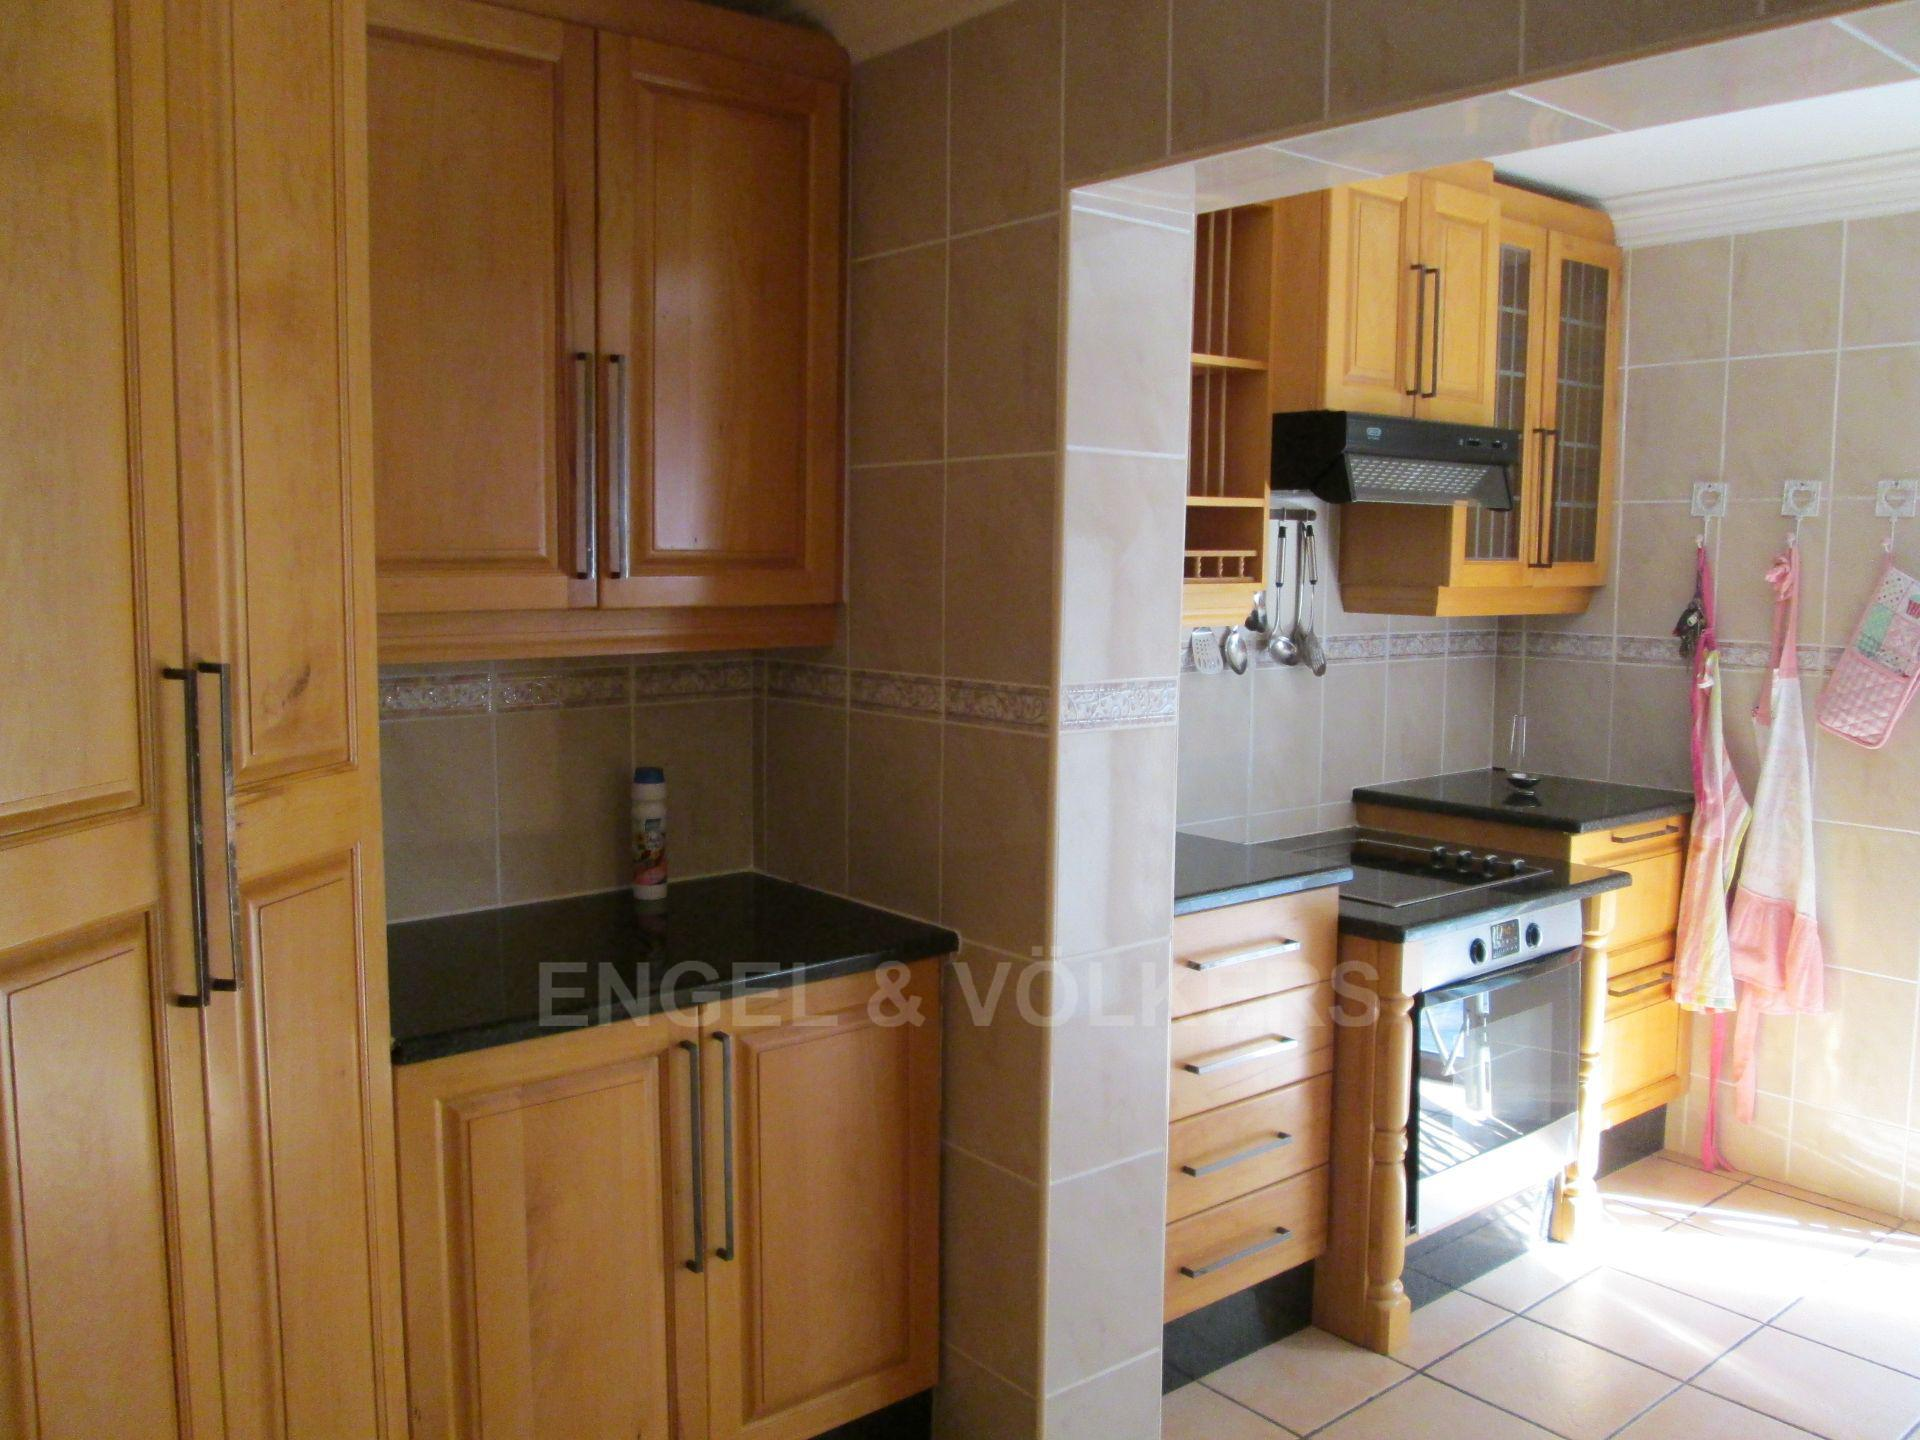 Southbroom property for sale. Ref No: 13502158. Picture no 4